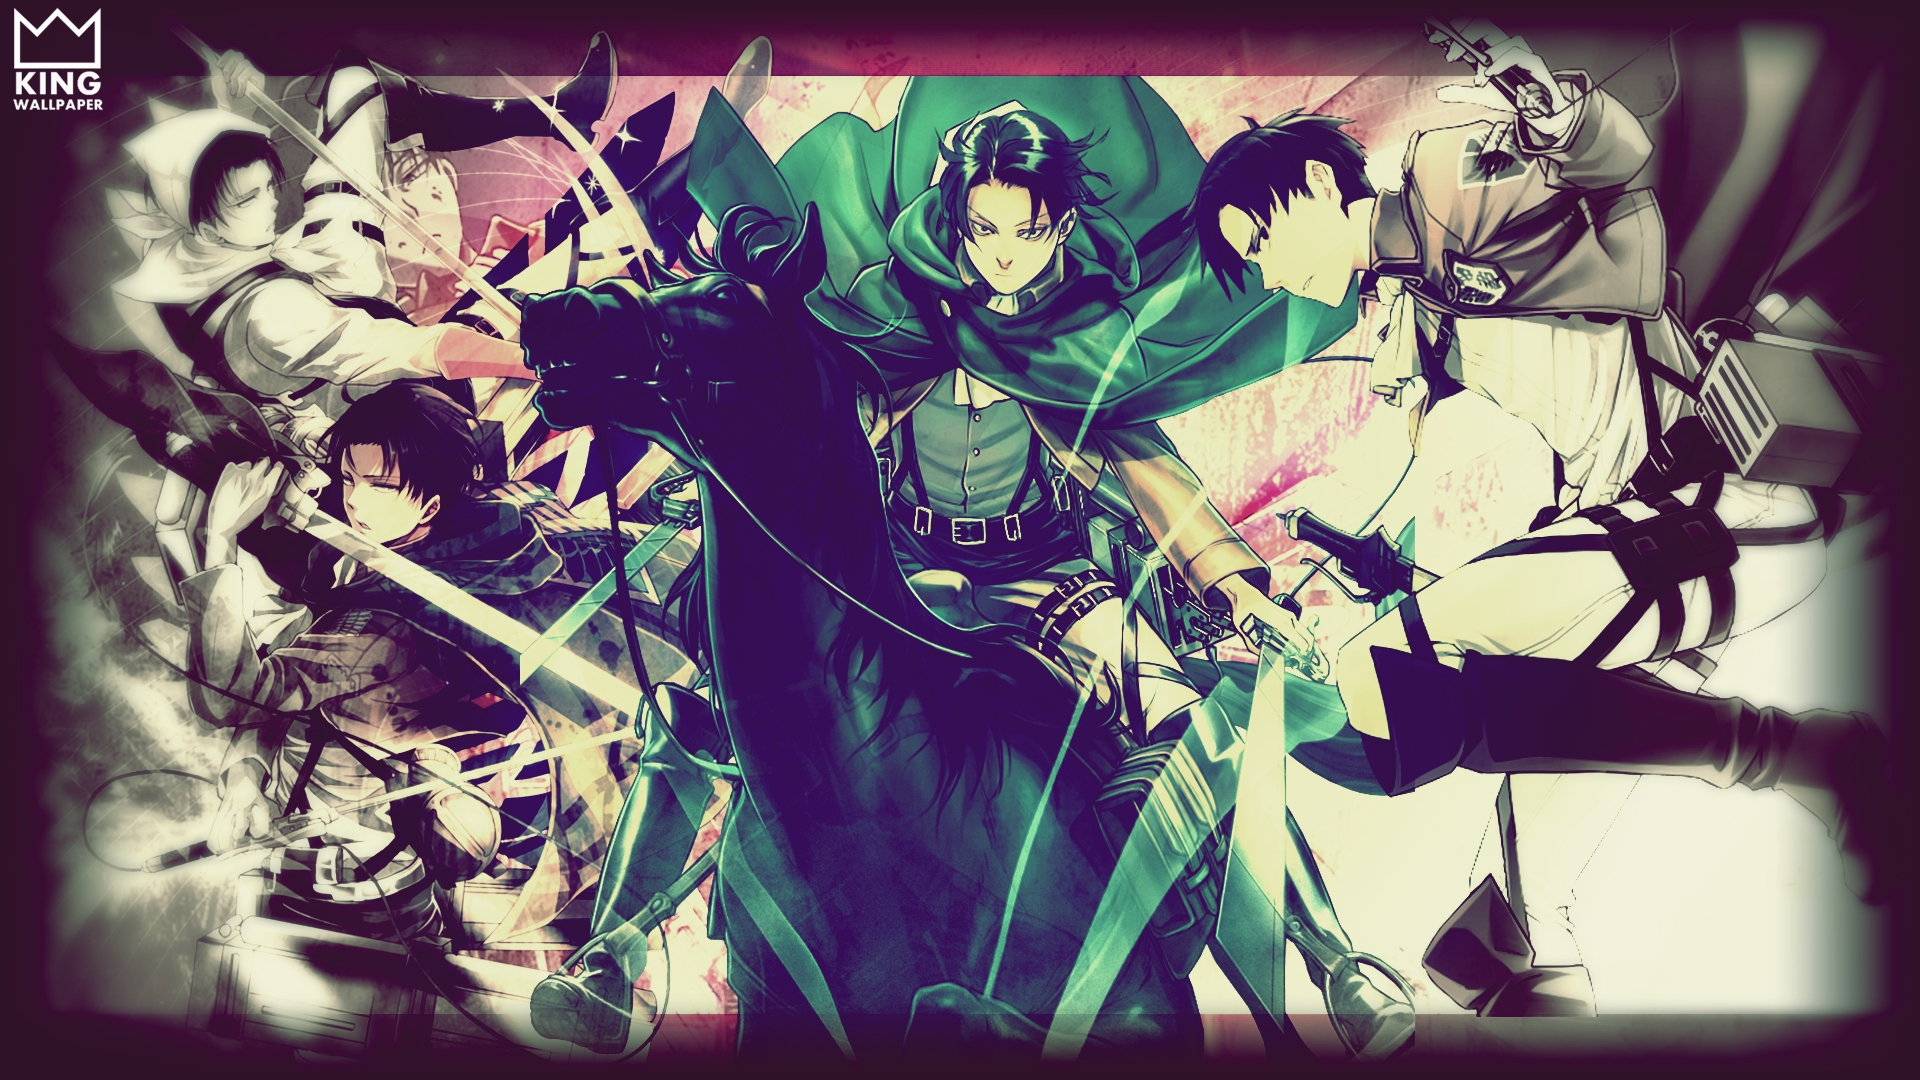 Levi Wallpaper   Shingeki no Kyojin by Kingwallpaper 1920x1080